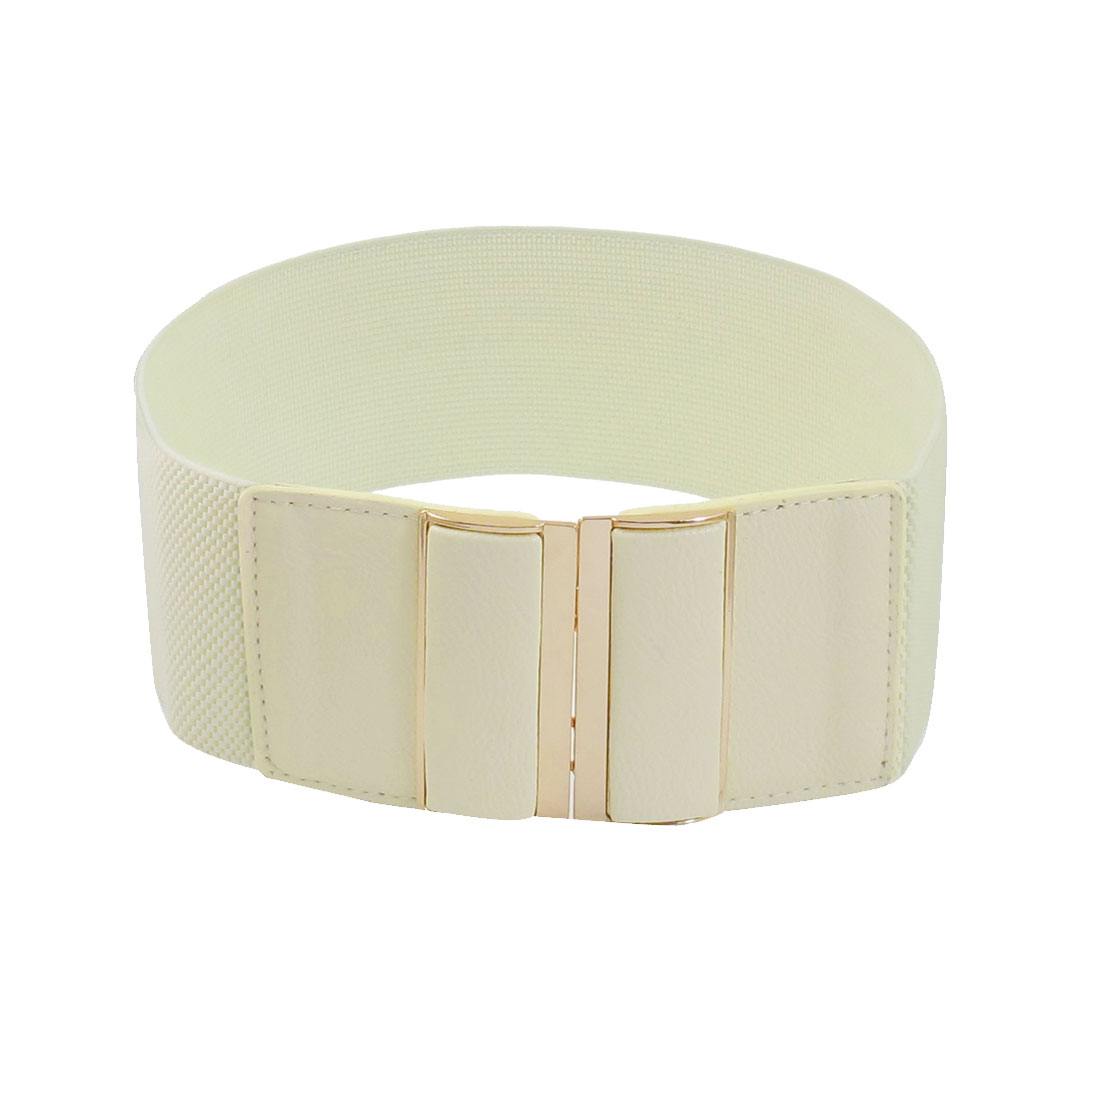 Off White Faux Leather Backing Interlocking Buckle Waistband Belt for Ladies